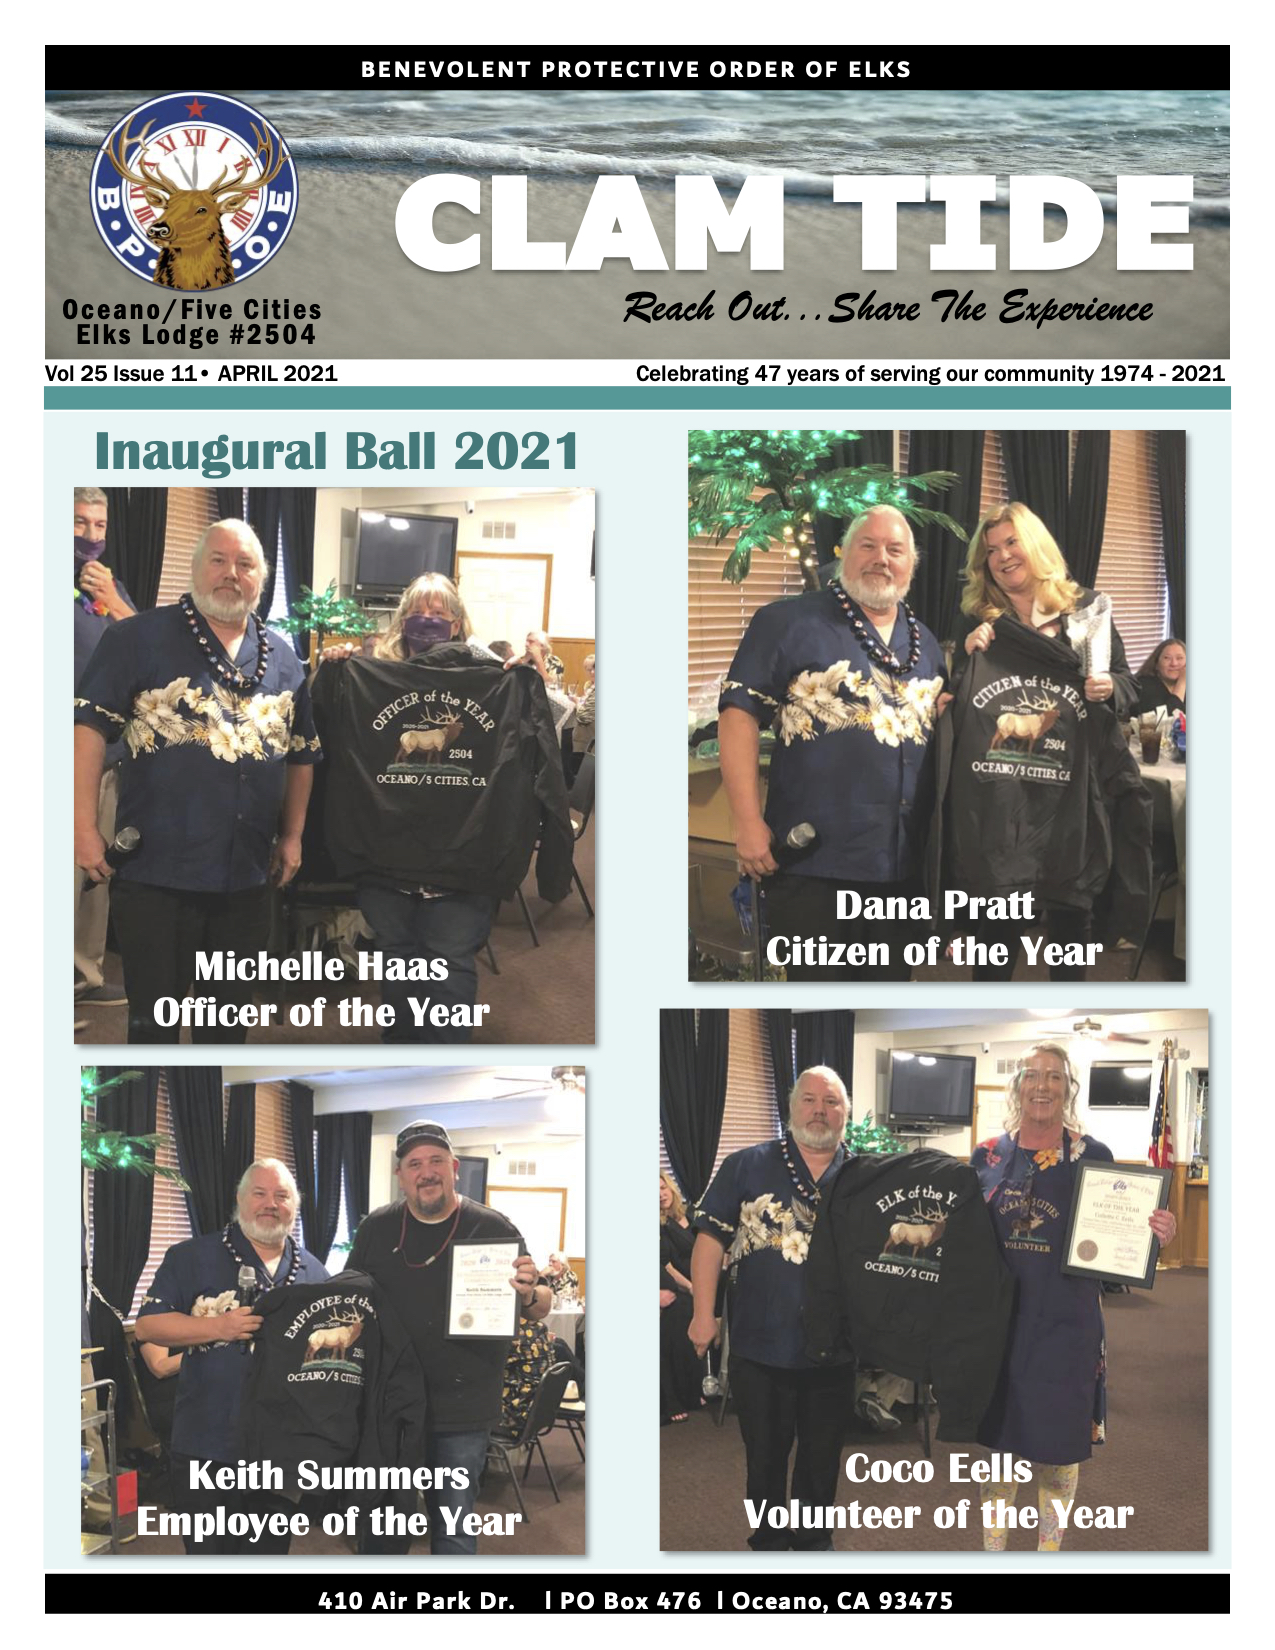 CLAM TIDE - MARCH 2021